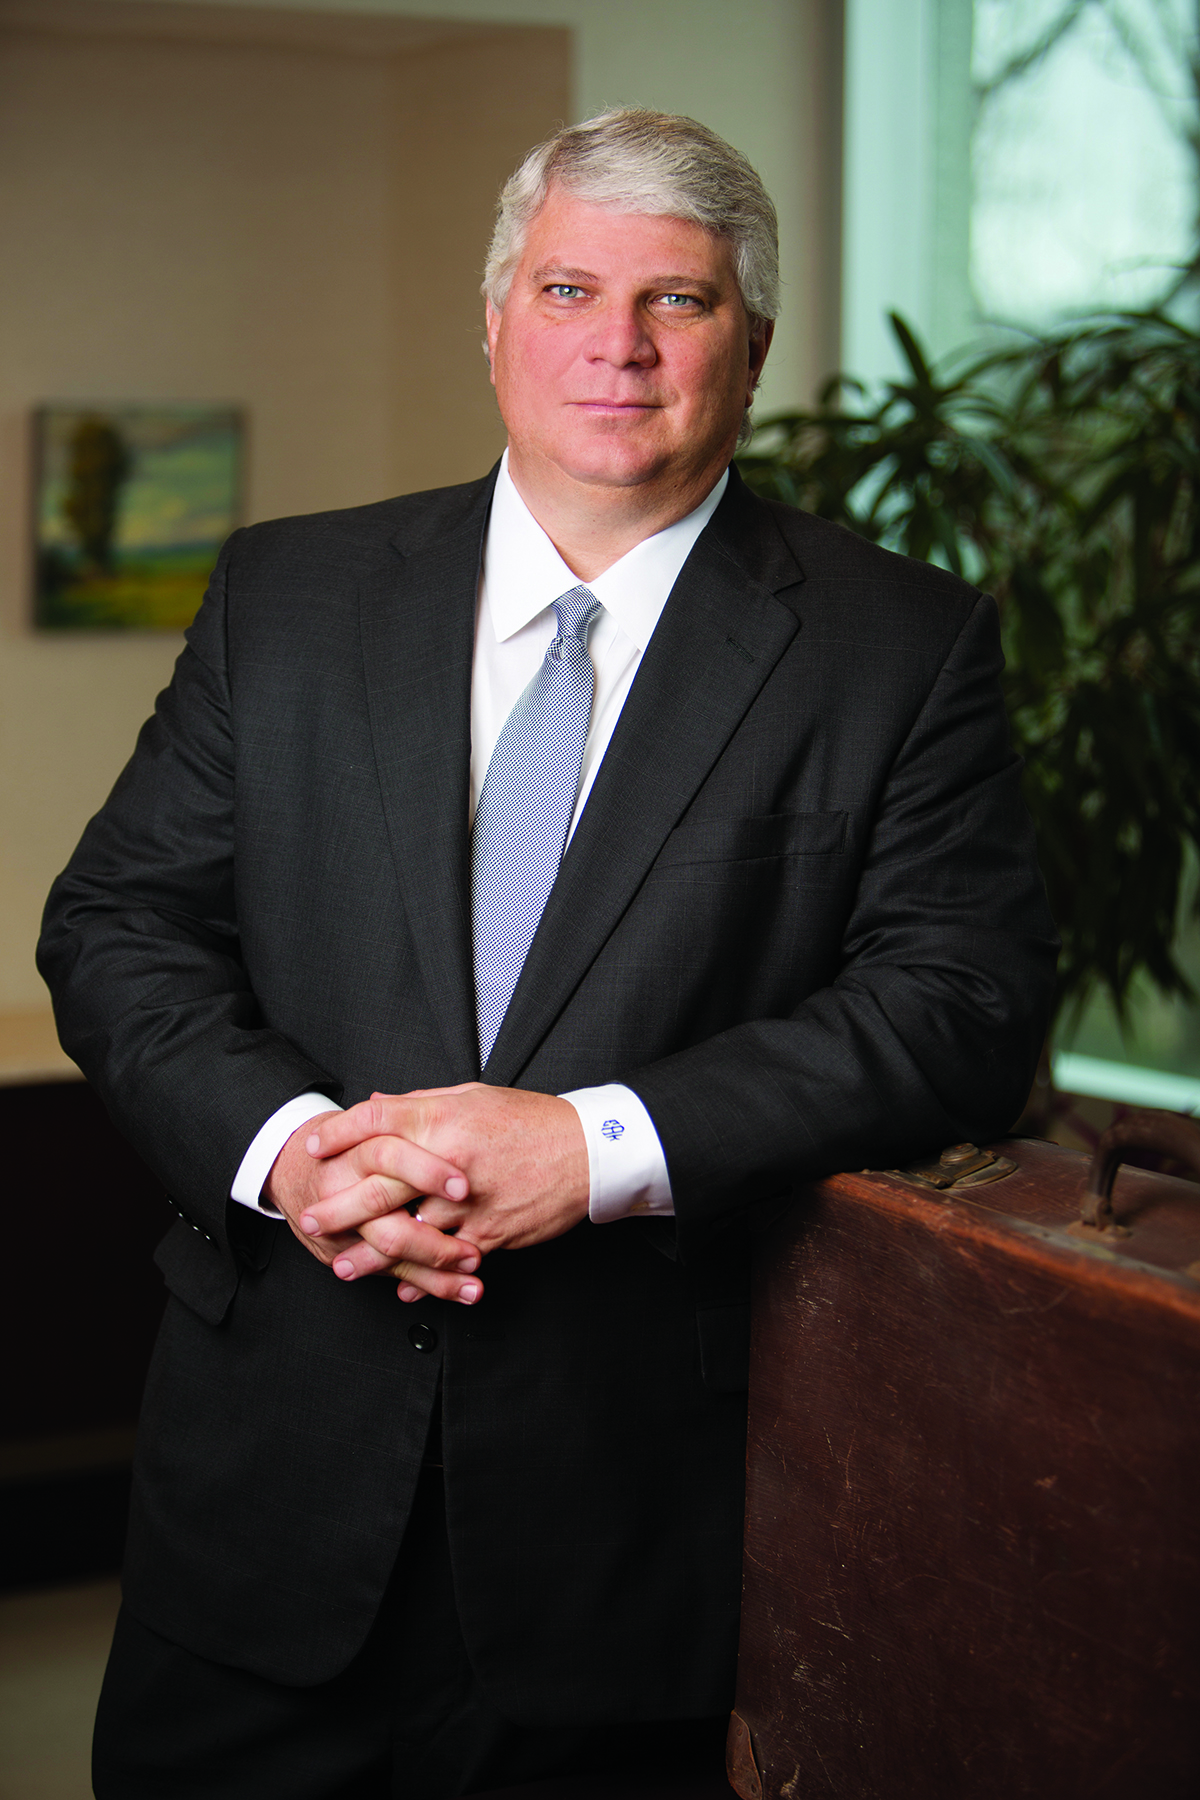 Edward K. Aldag, Jr., Chairman, President, and CEO of Medical Properties Trust